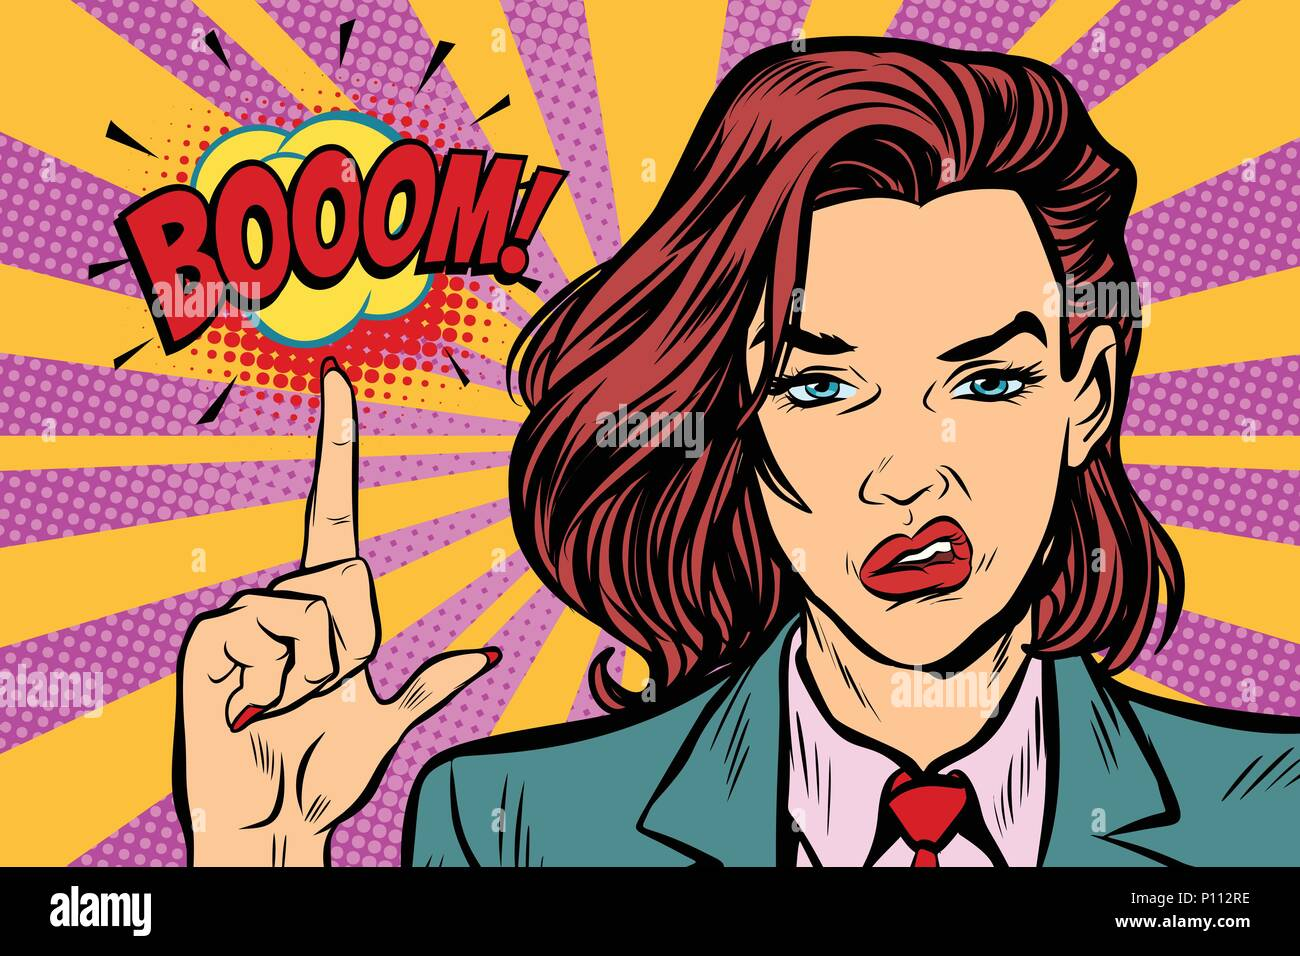 boom-strong-woman-index-finger-up-P112RE.jpg